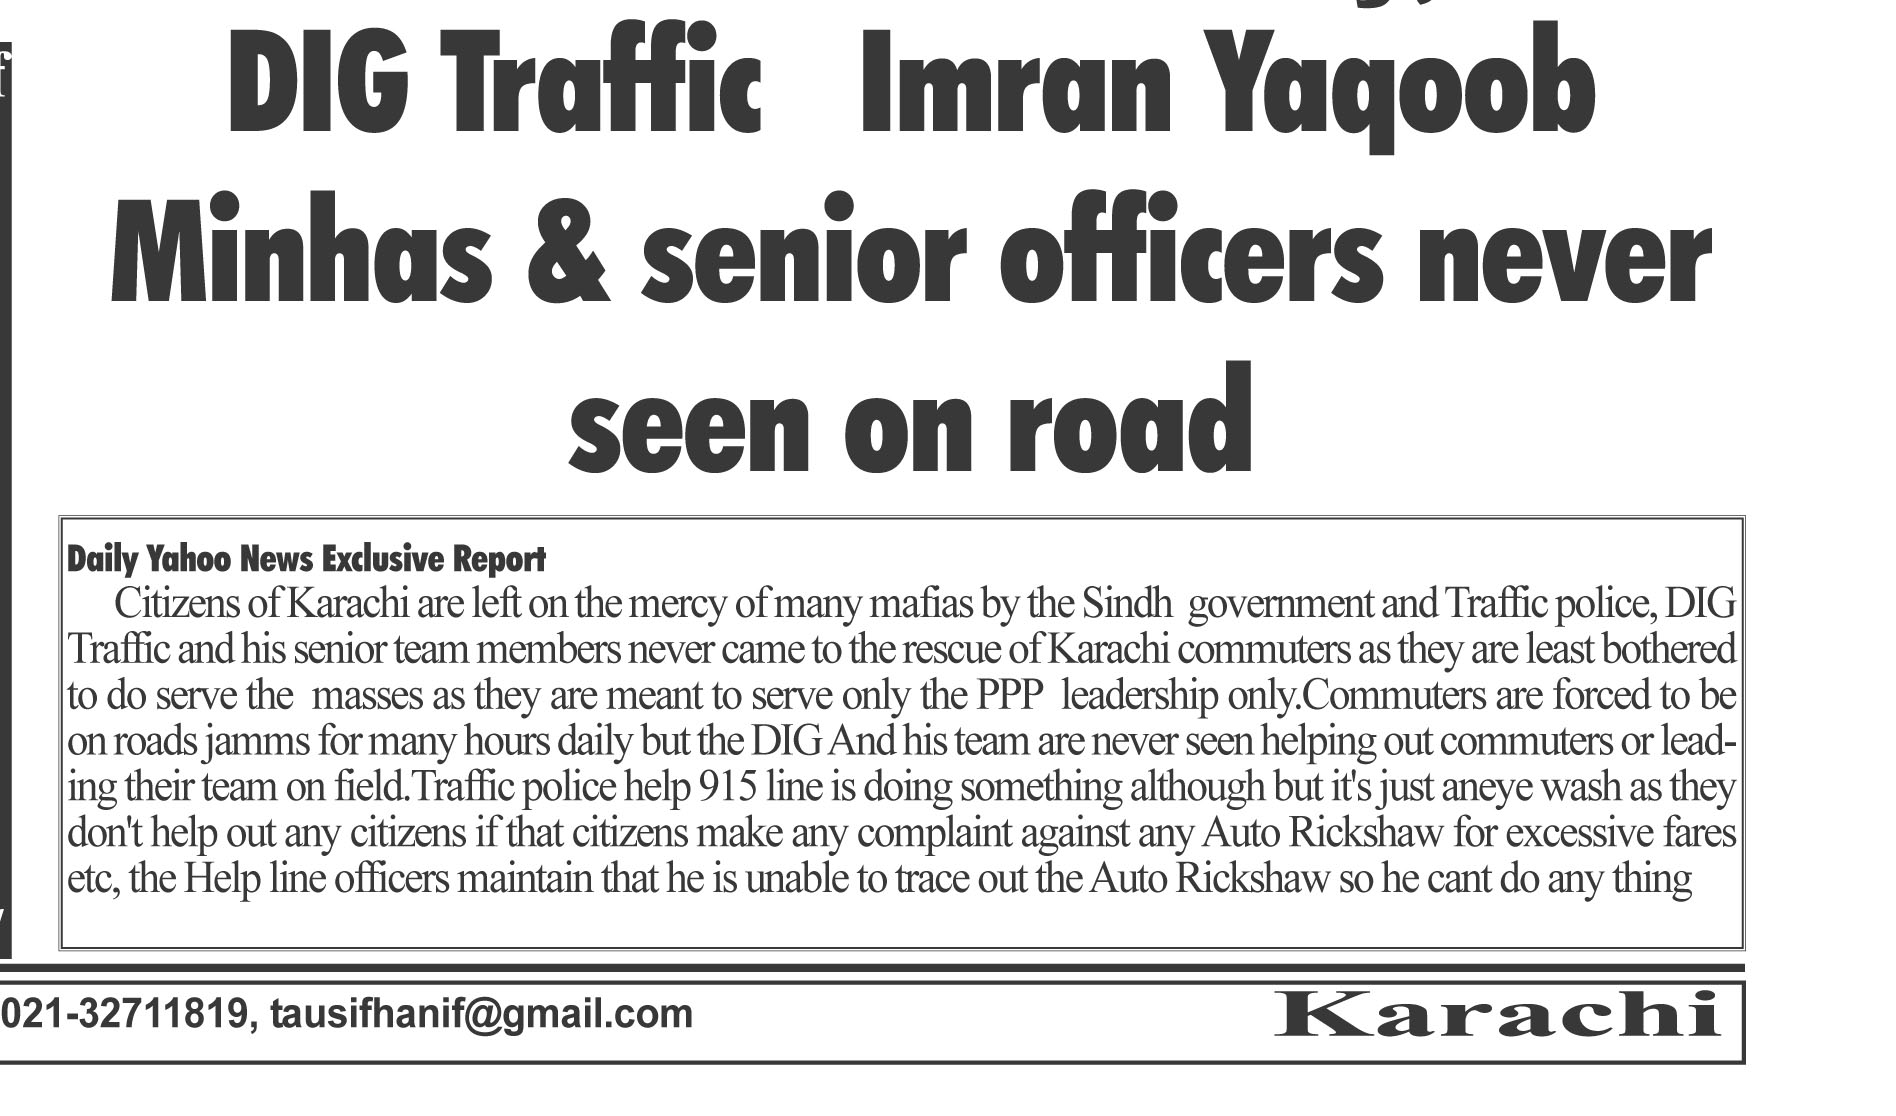 DIG Traffic Imran Yaqoob never seen on road for citizens